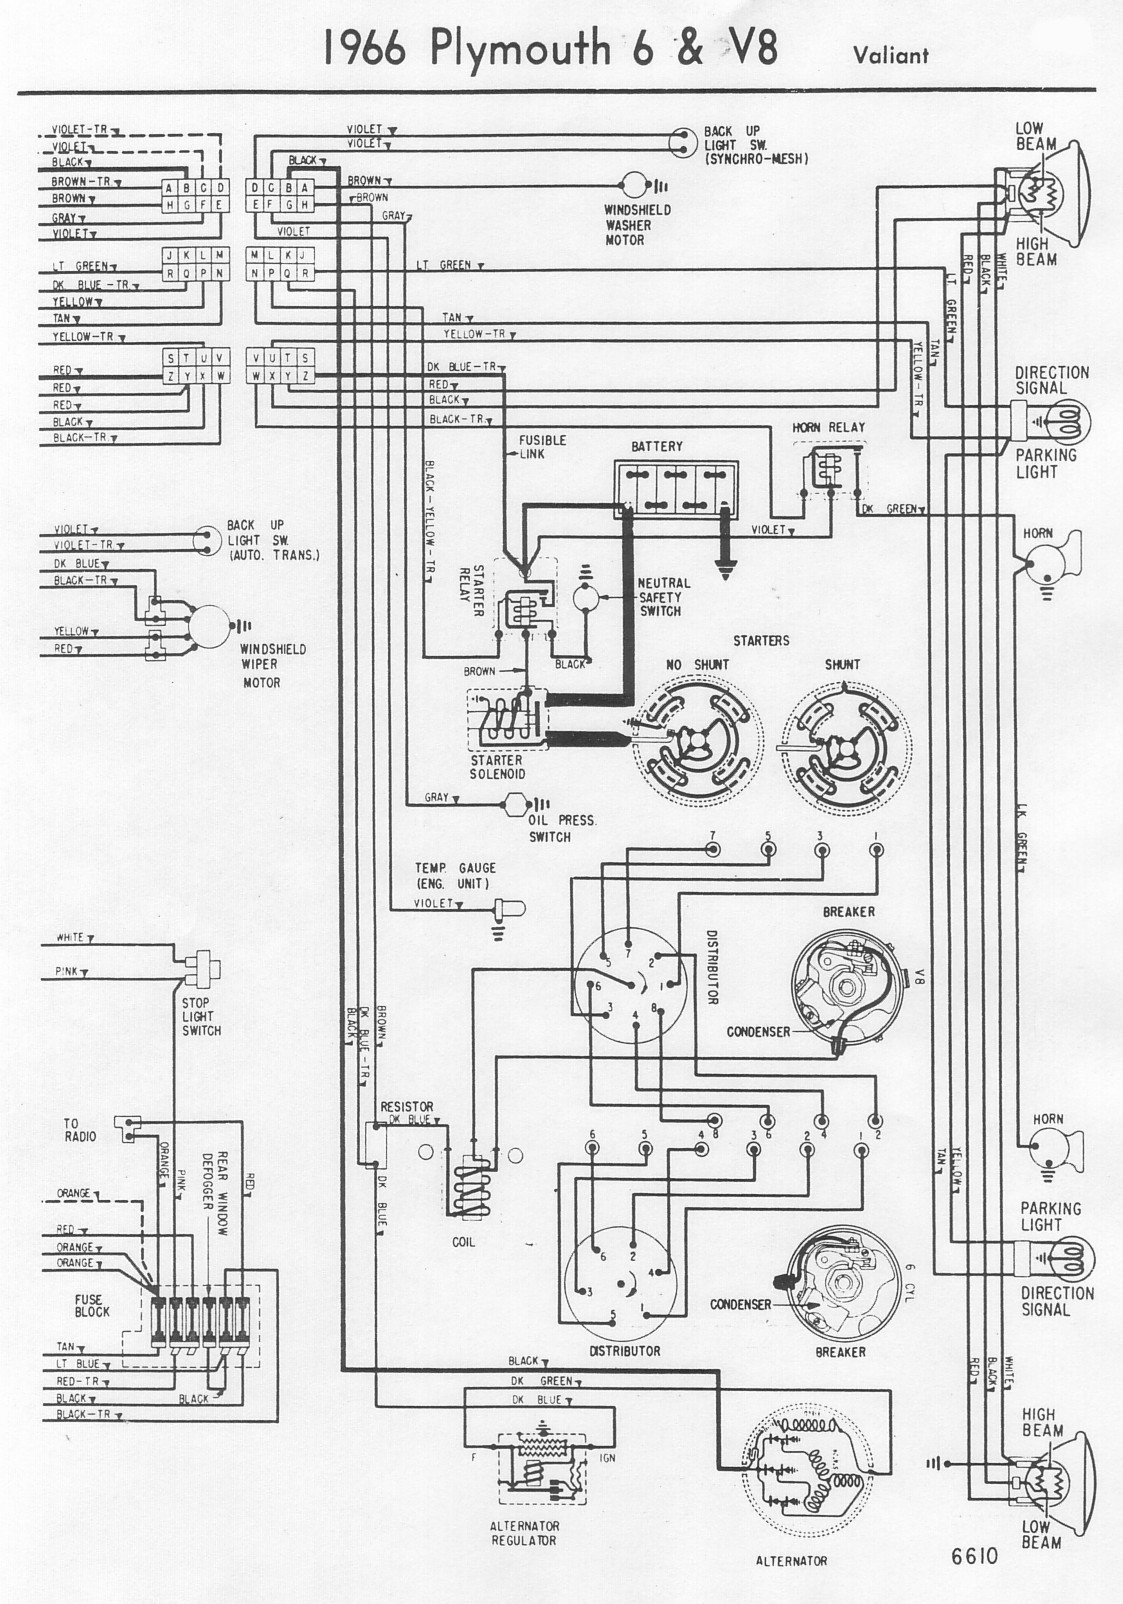 1964 Cuda Wiring Harness Diagram Schematics 1966 Impala Wire Kit Plymouth Barracuda Books Of U2022 Plymoth